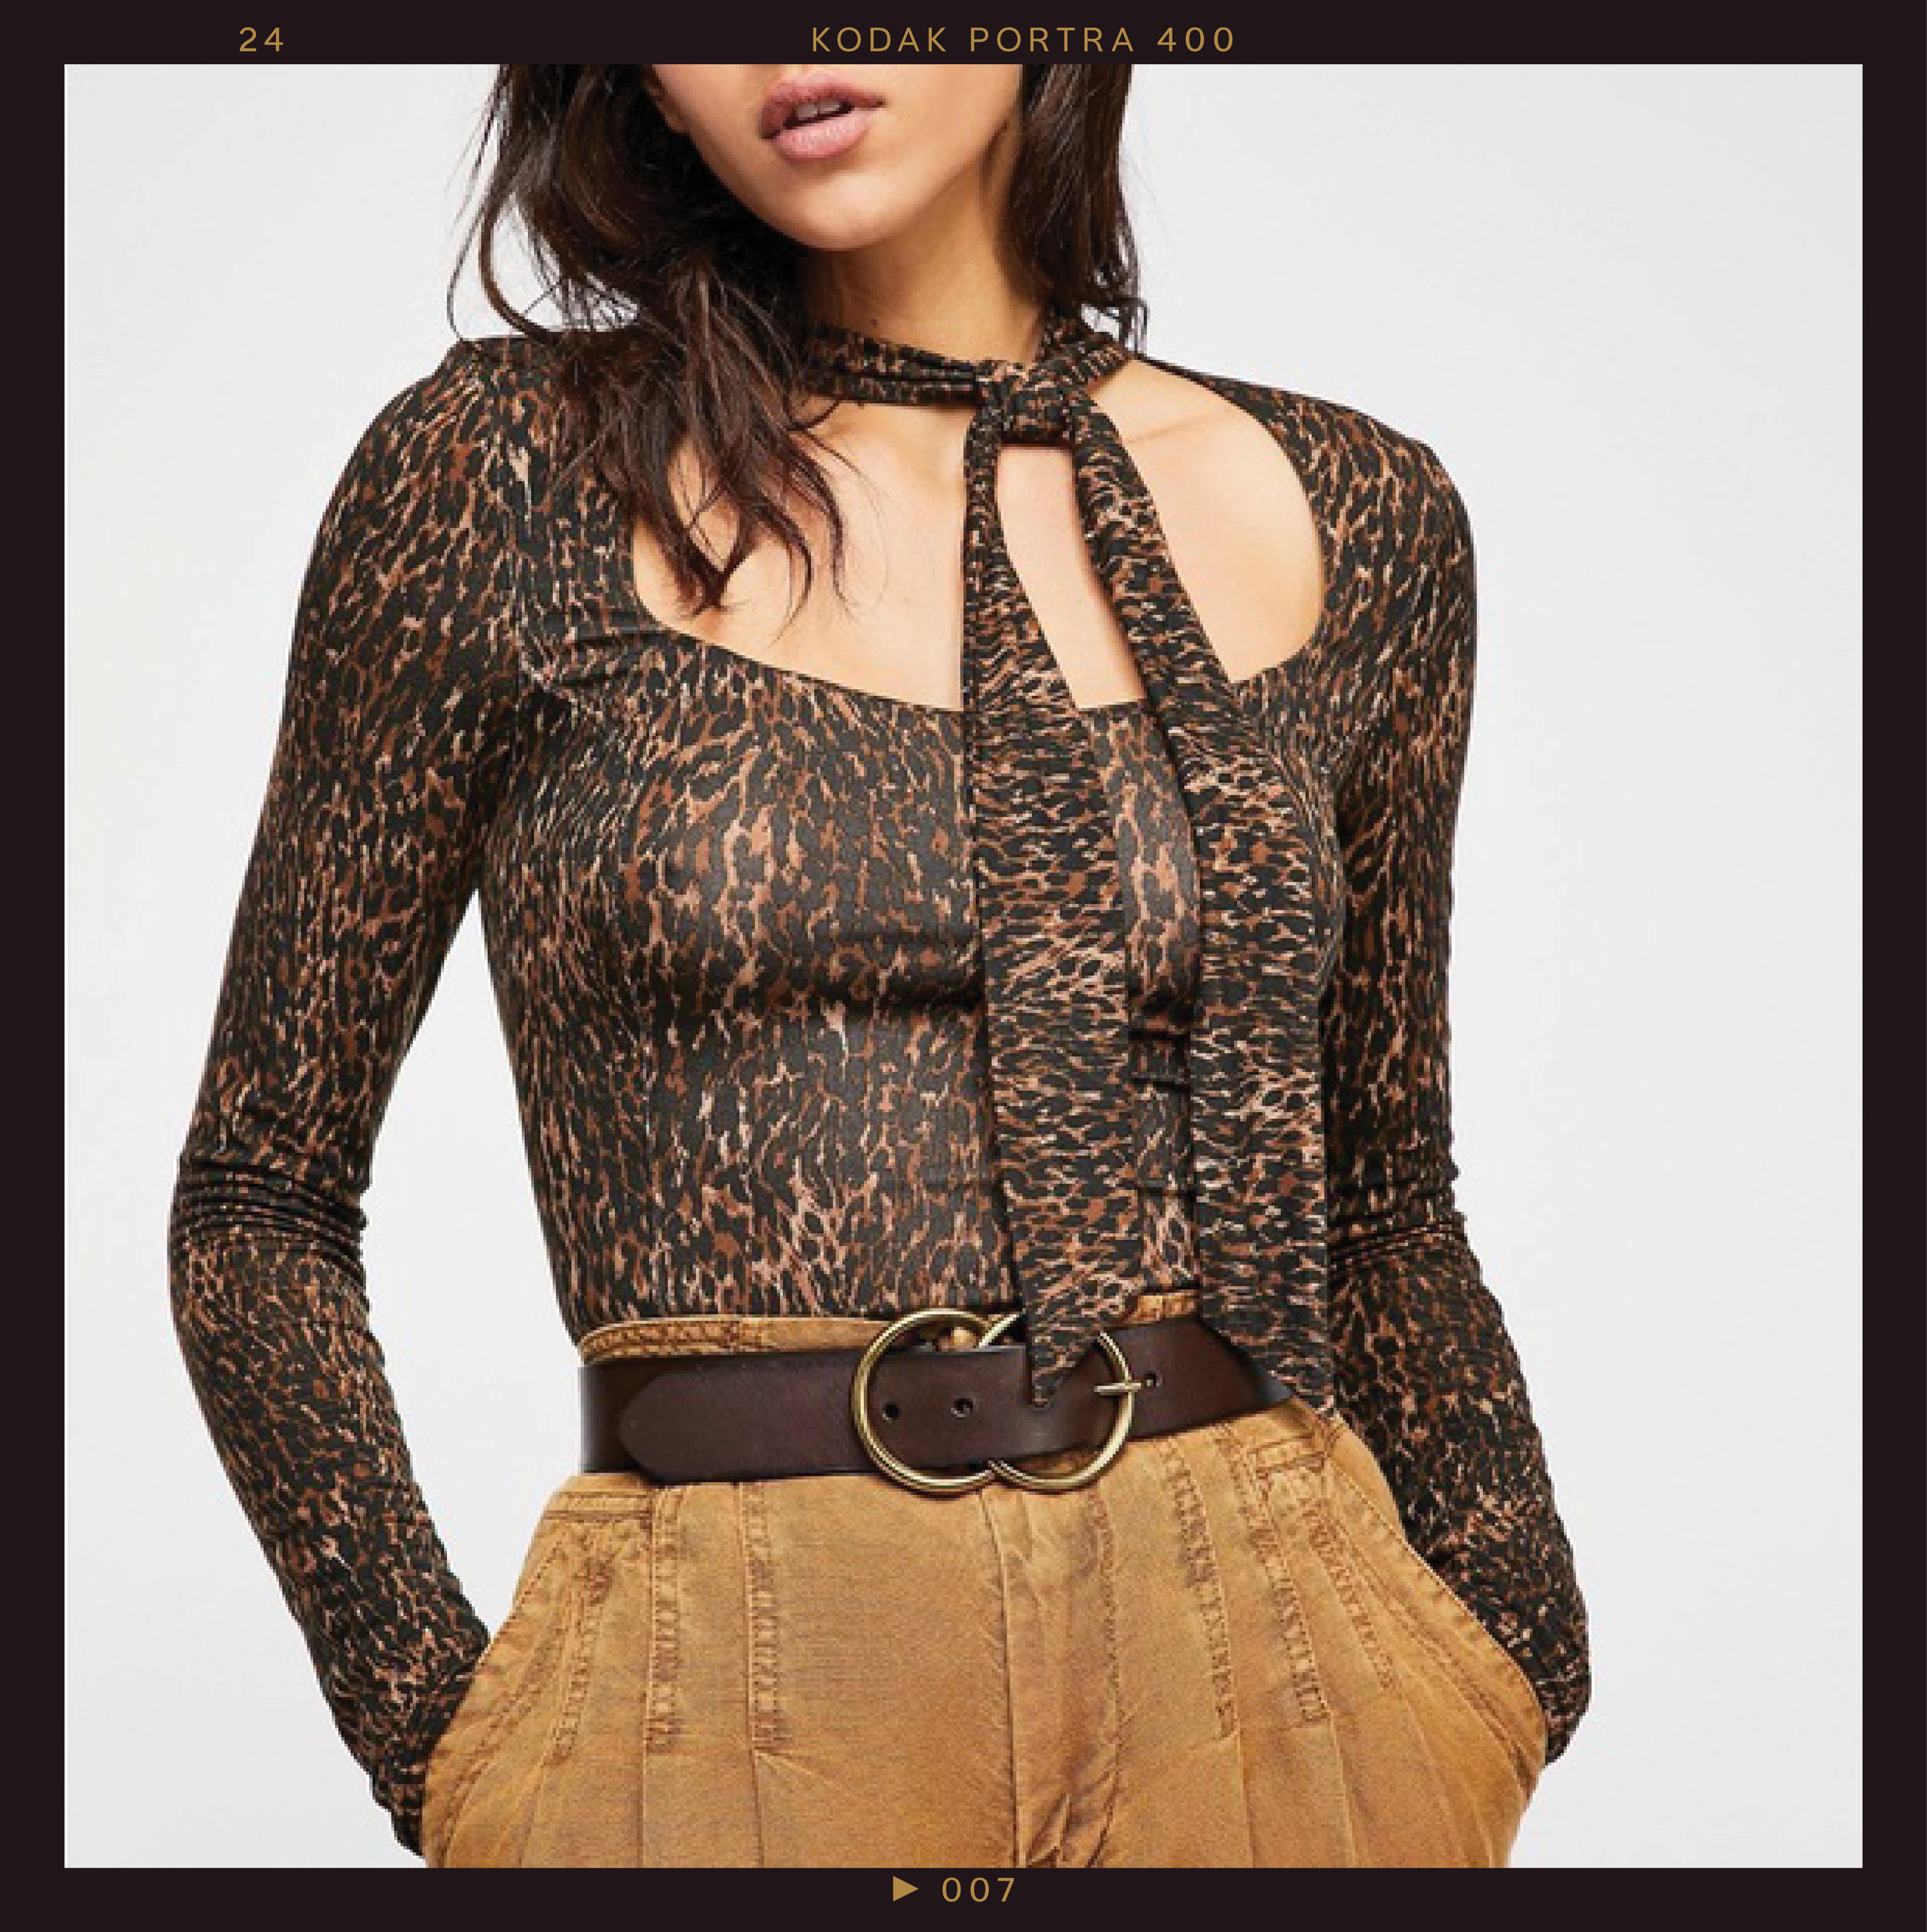 Free People Leopard Wild Thing Top, $24